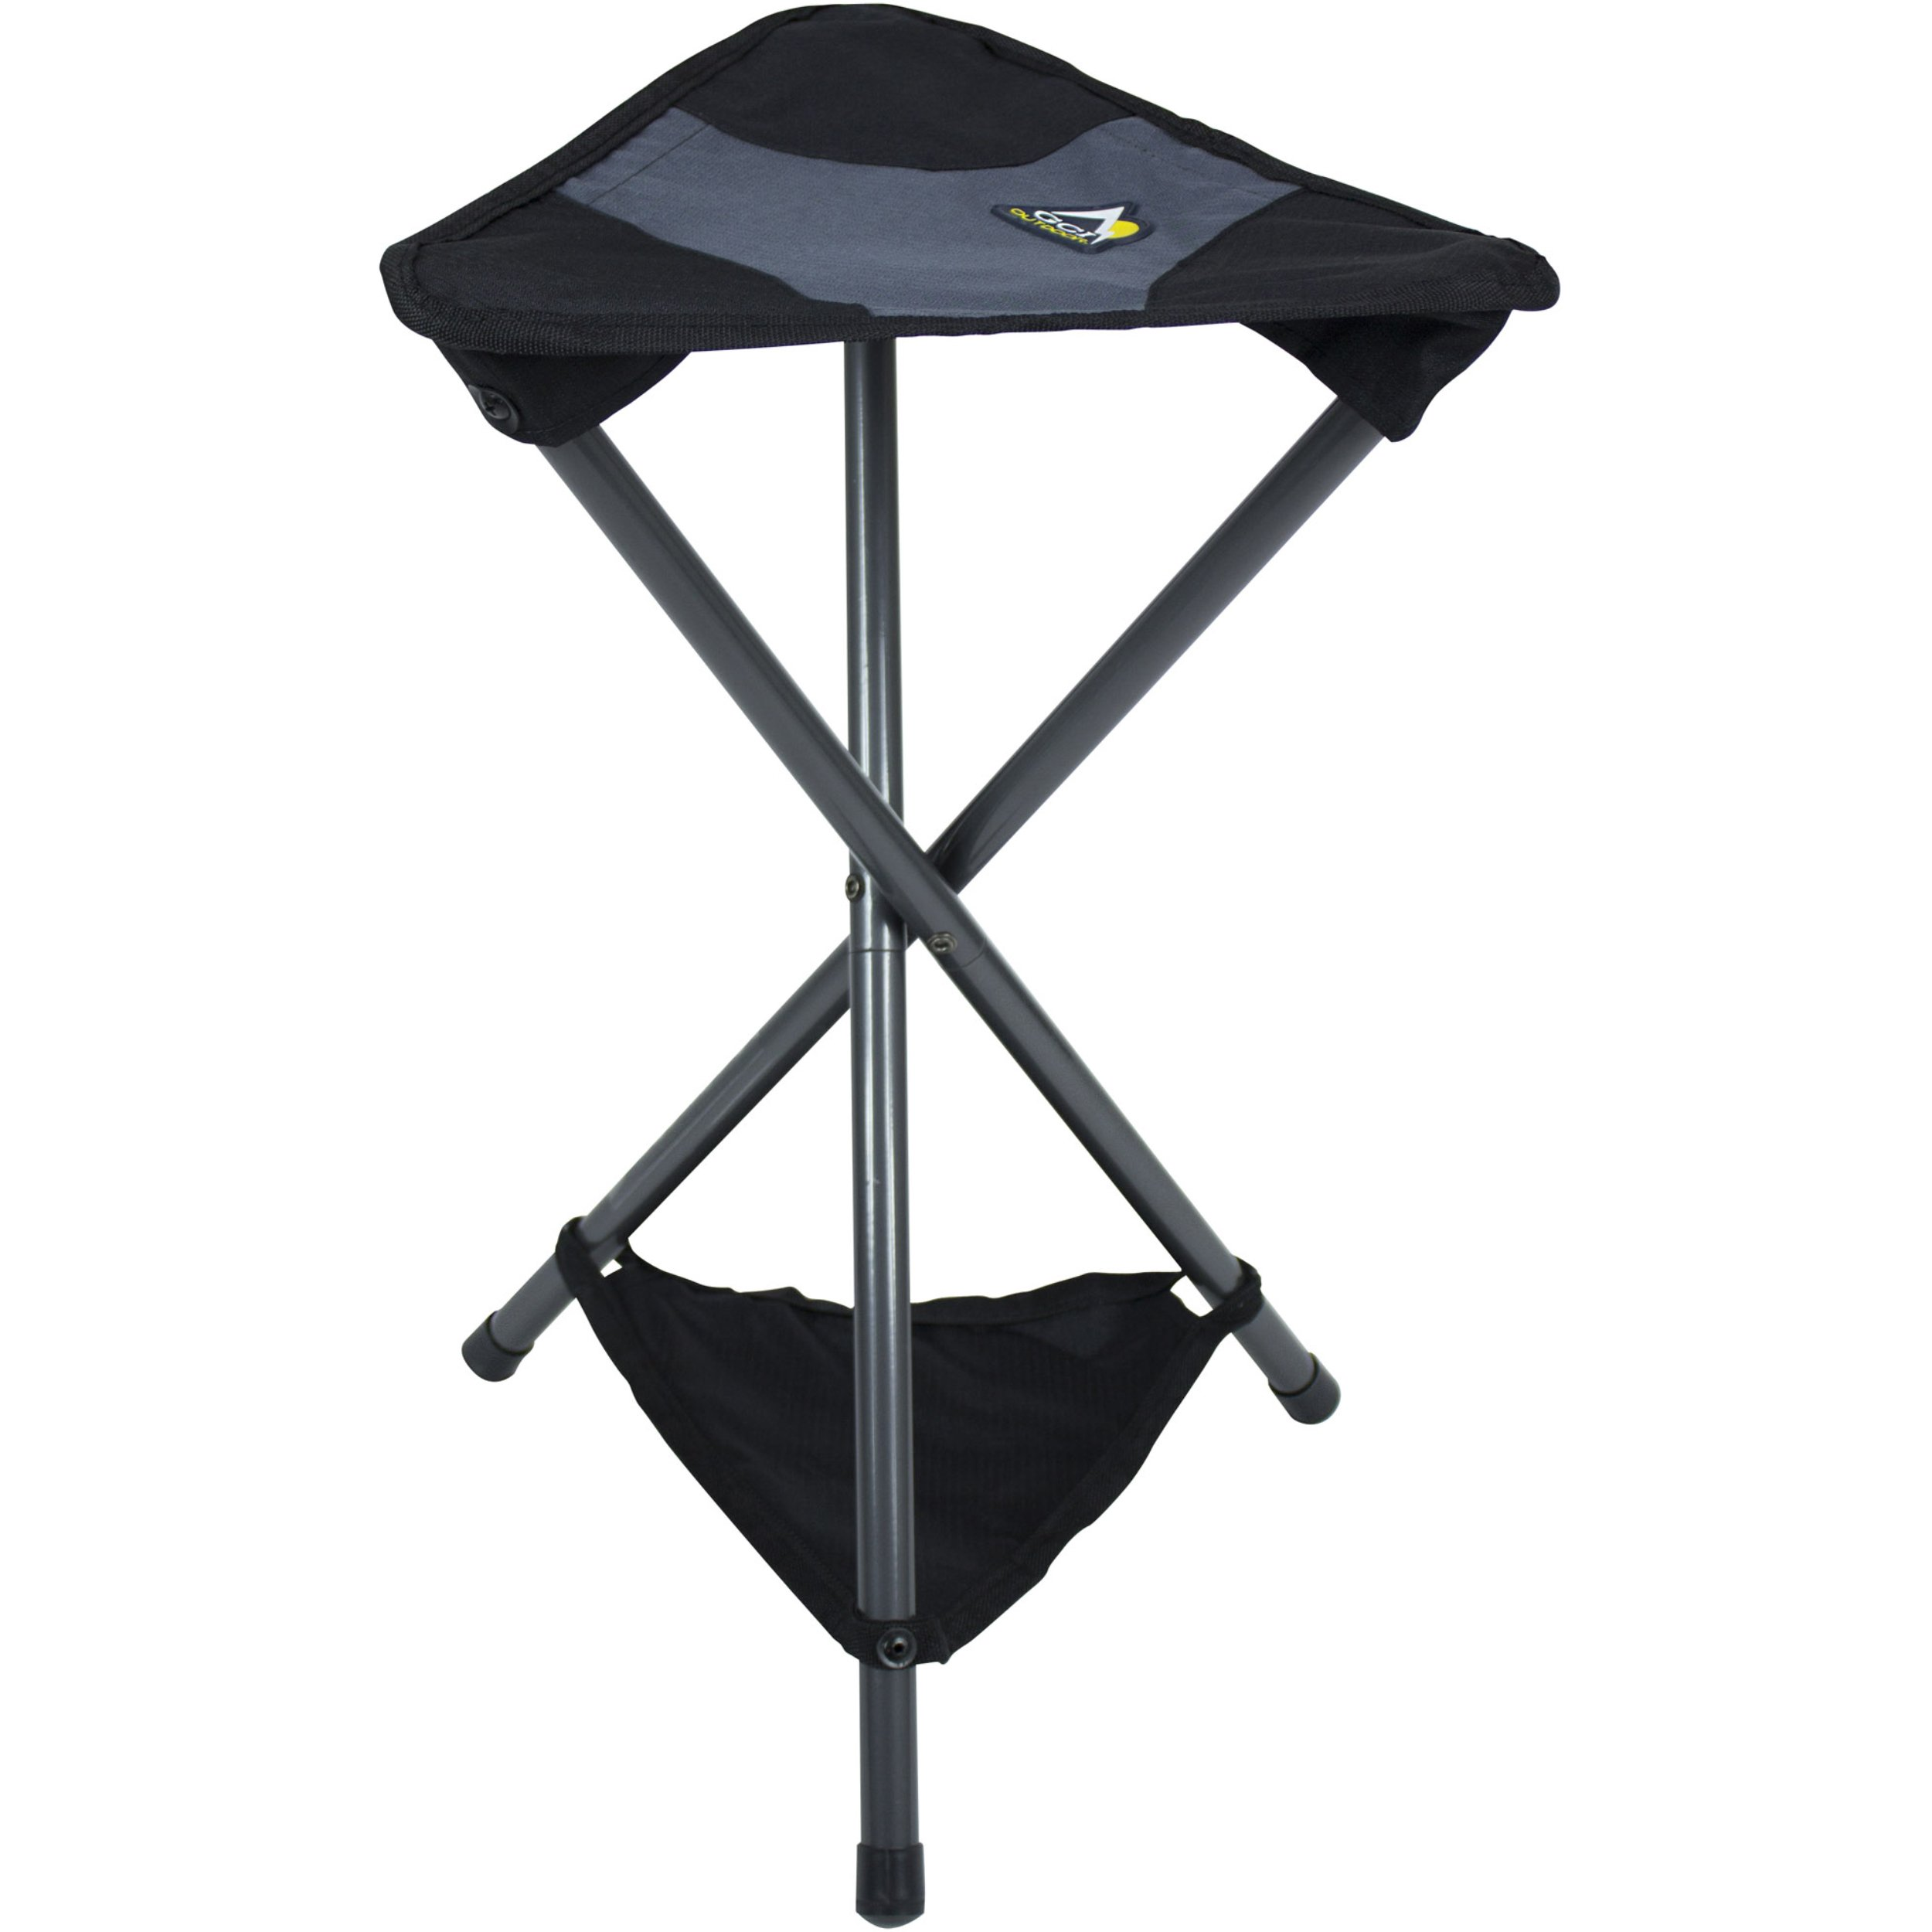 GCI Outdoor PackSeat Portable Tripod Camping Sports Stool